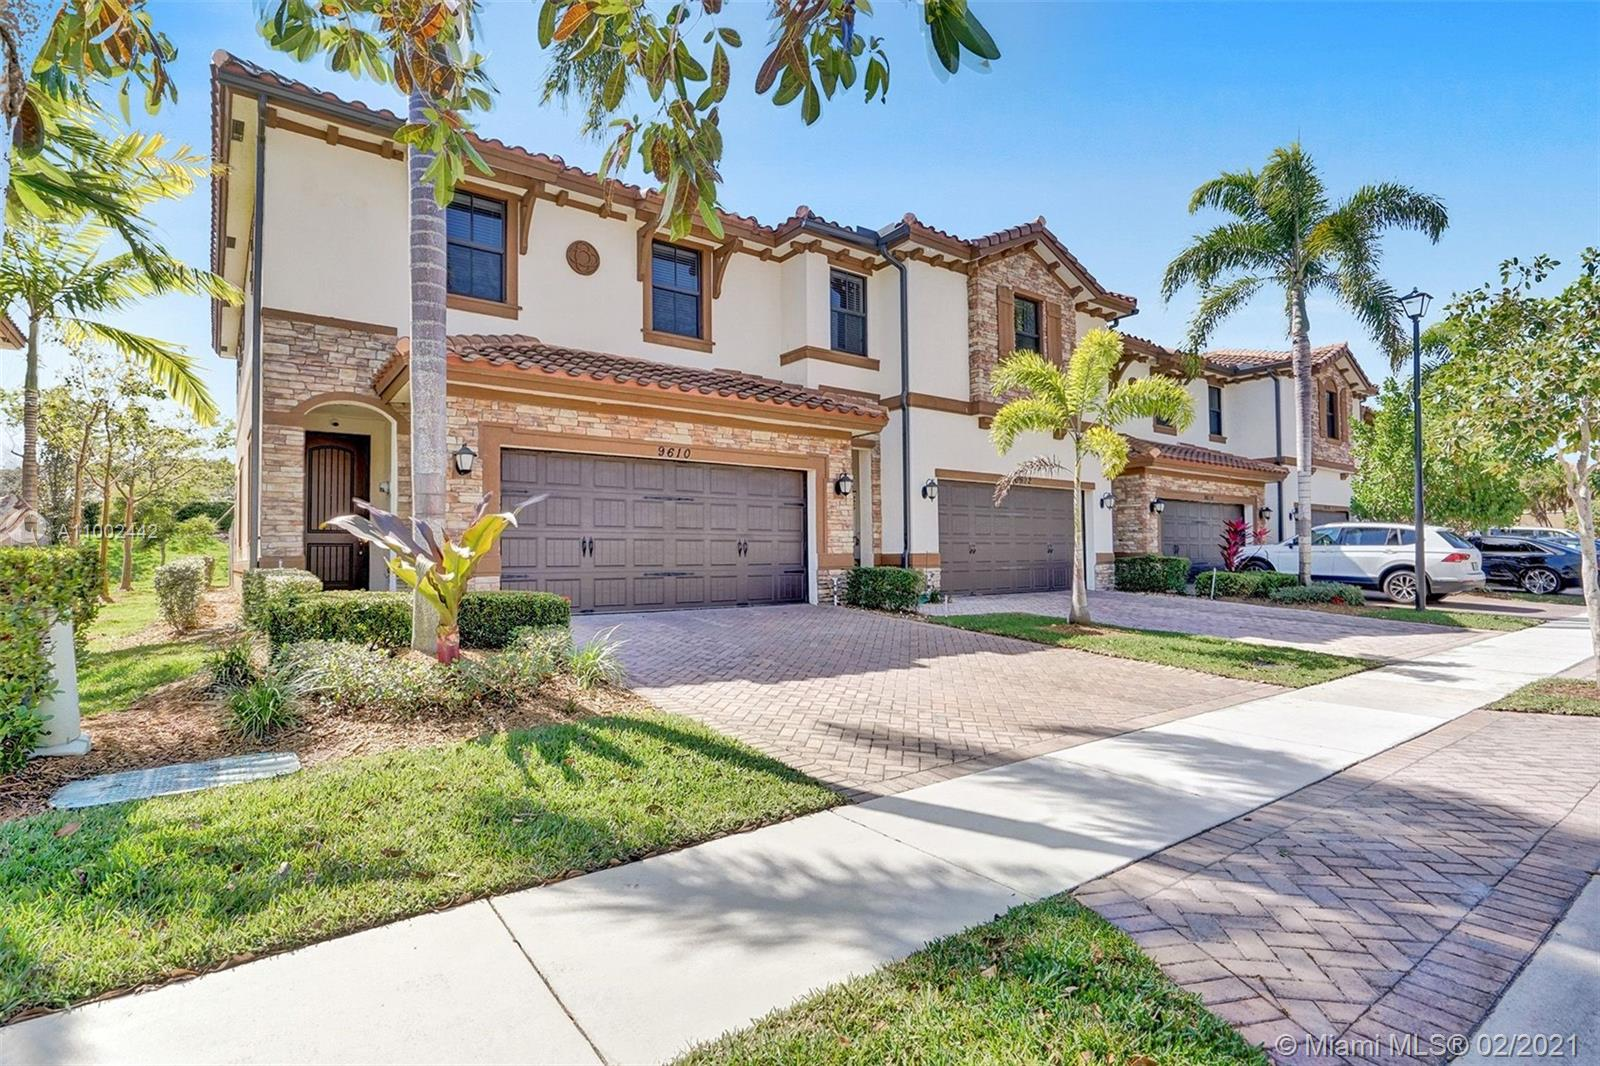 This beautiful designed Townhome is located in the Town Parc community of Mira Lago. This gorgeous corner unit attracts natural light which gives you a bright and warmth feel. This home comes with newly remodel vinyl tile flooring both upstairs and downstairs. Updated and spacious kitchen for a new a family to enjoy. Full Impact Windows throughout the entire home and a comforting private backyard space which is fenced in for your own entertainment. Reasonable HOA that gives you access to the club amenities and easy access to main roadways and major highways.